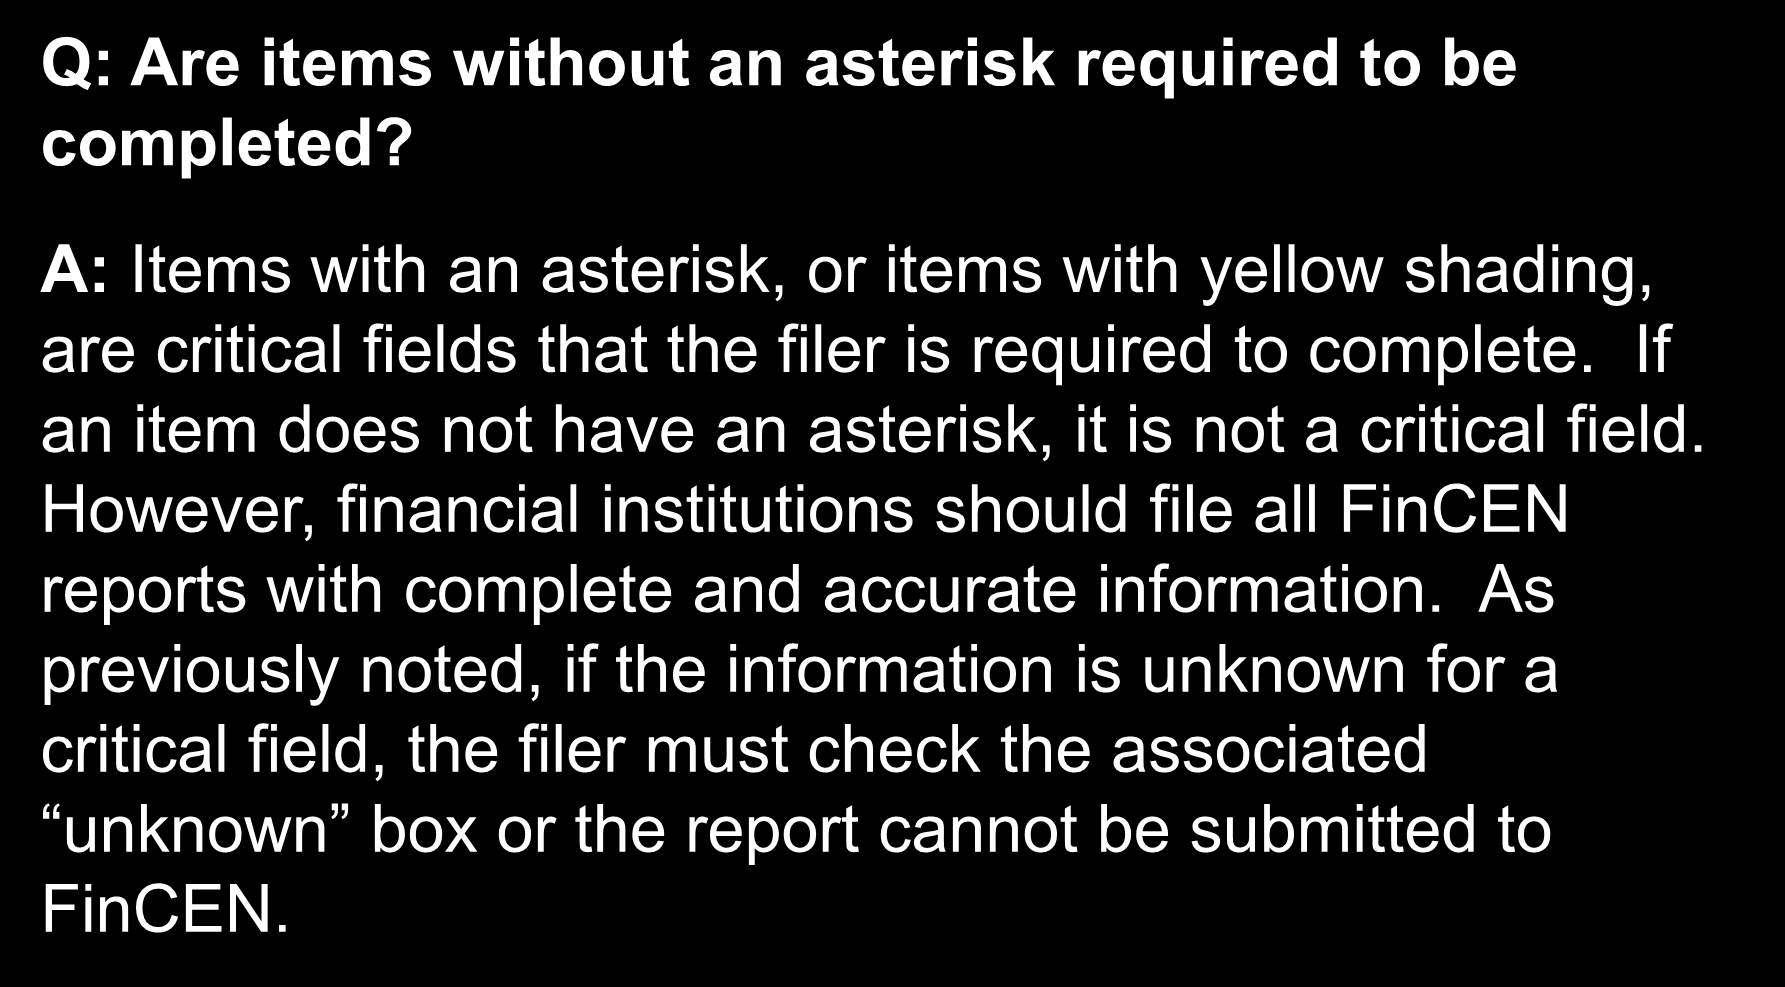 Frequently Asked Questions Q: Are items without an asterisk required to be completed?